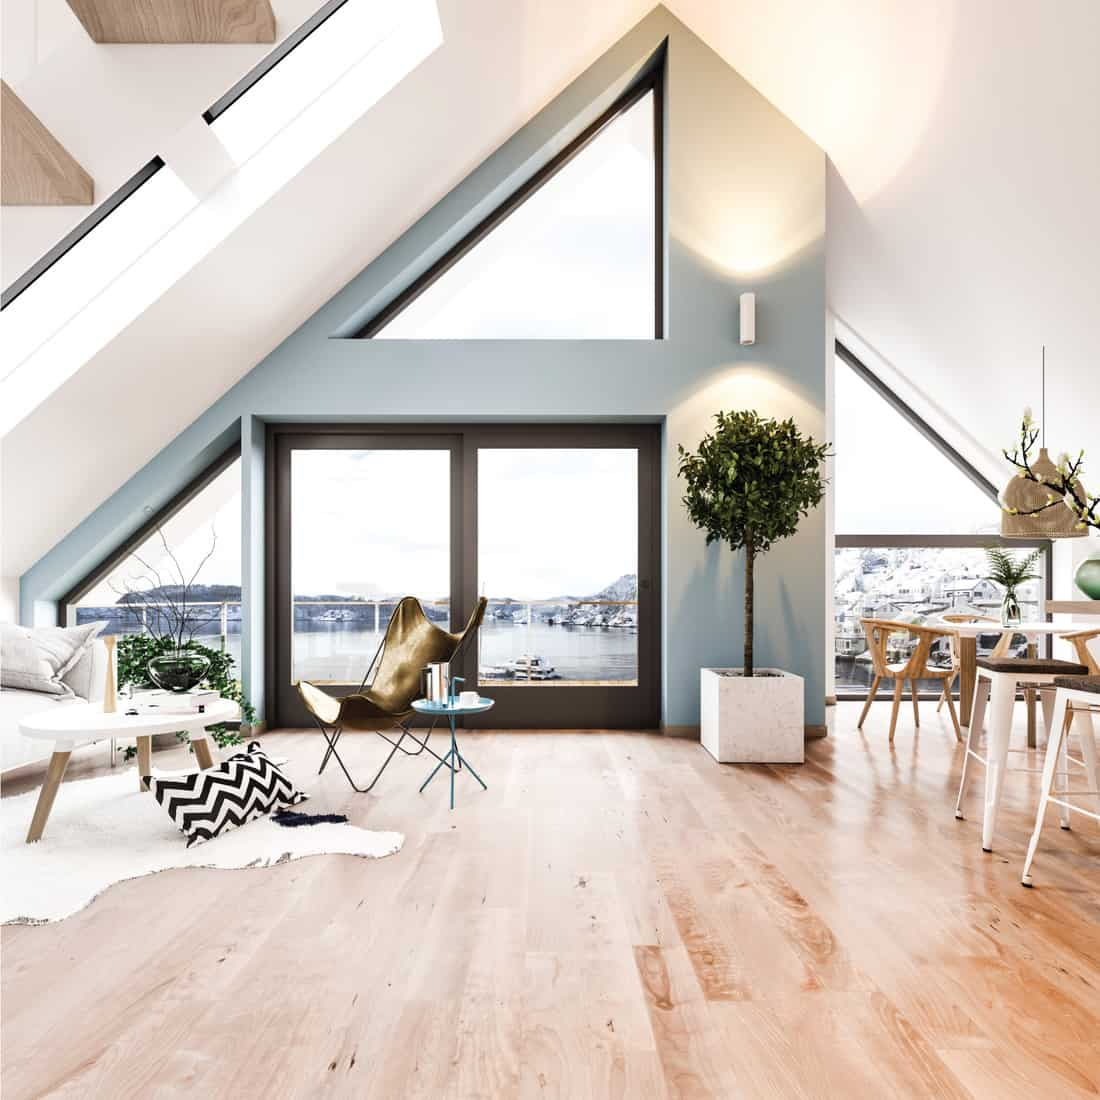 loft style room with open floorplan, expansive window layout, wood and metal furnishings, indoor plants